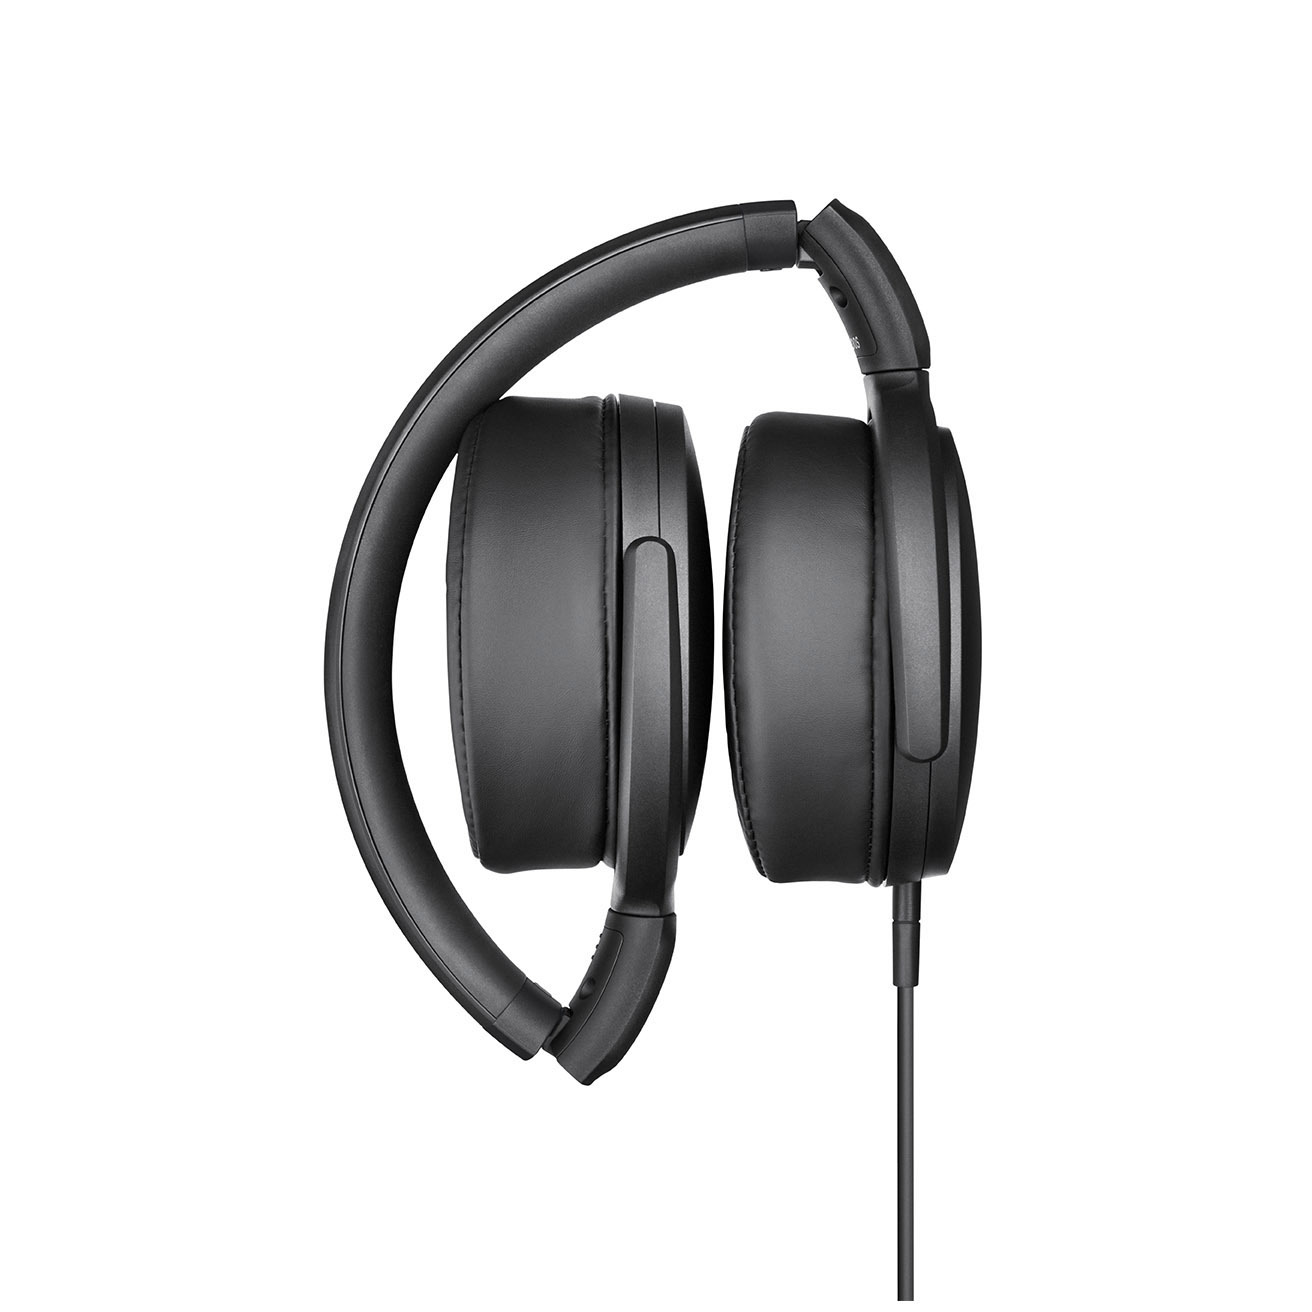 product_detail_x2_desktop_Sennheiser-Product-HD-400S-Black-Product-Image-4.jpg (117 KB)